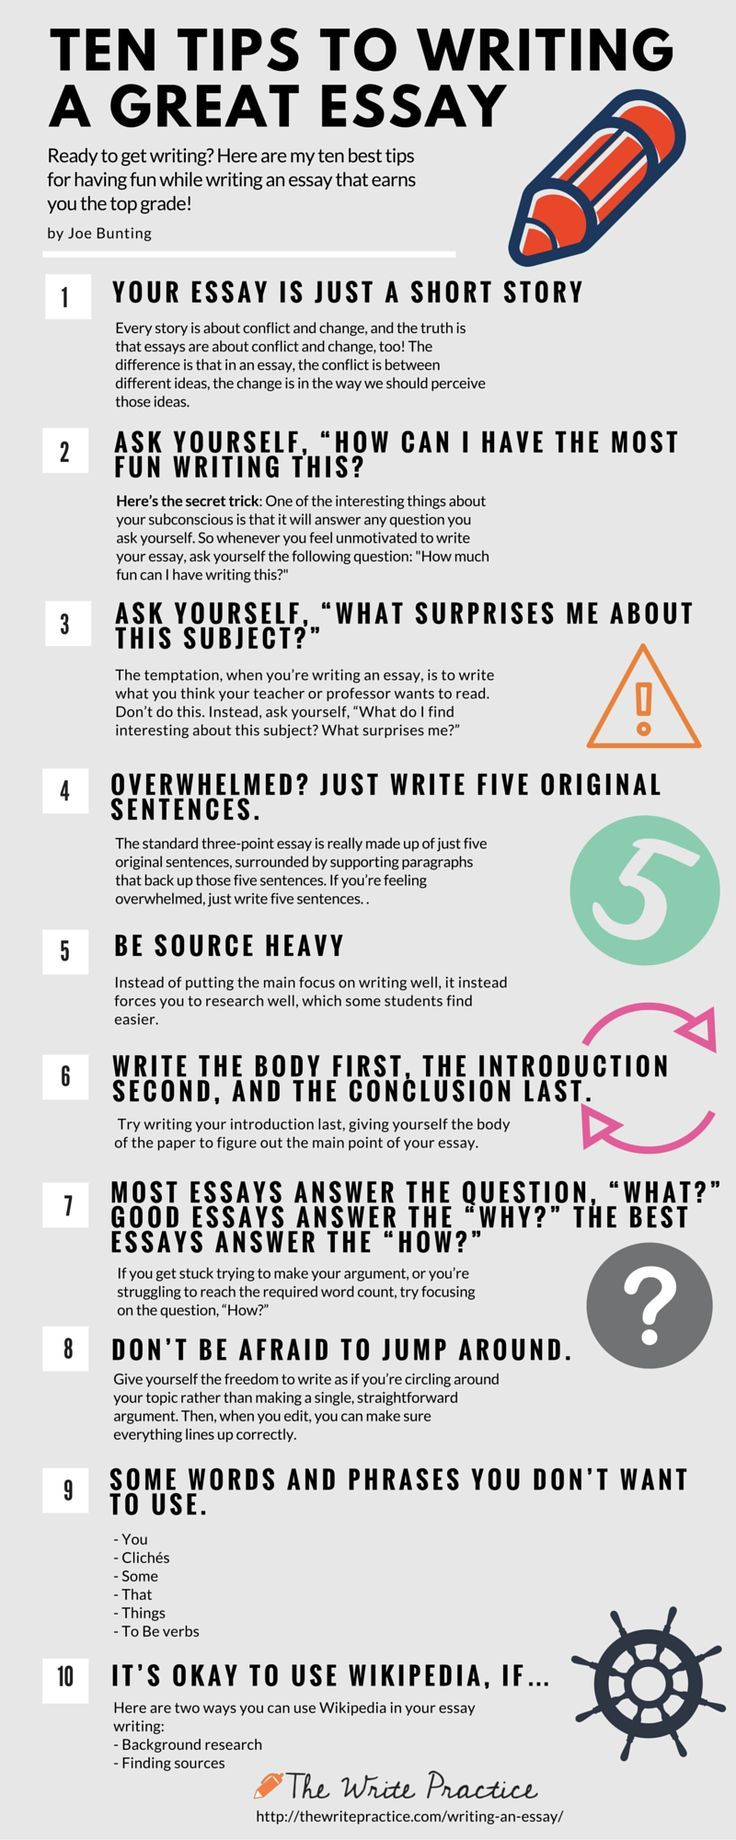 best images about essay writing writing an essay that in mind here s an infographic ten tips to write an essay out